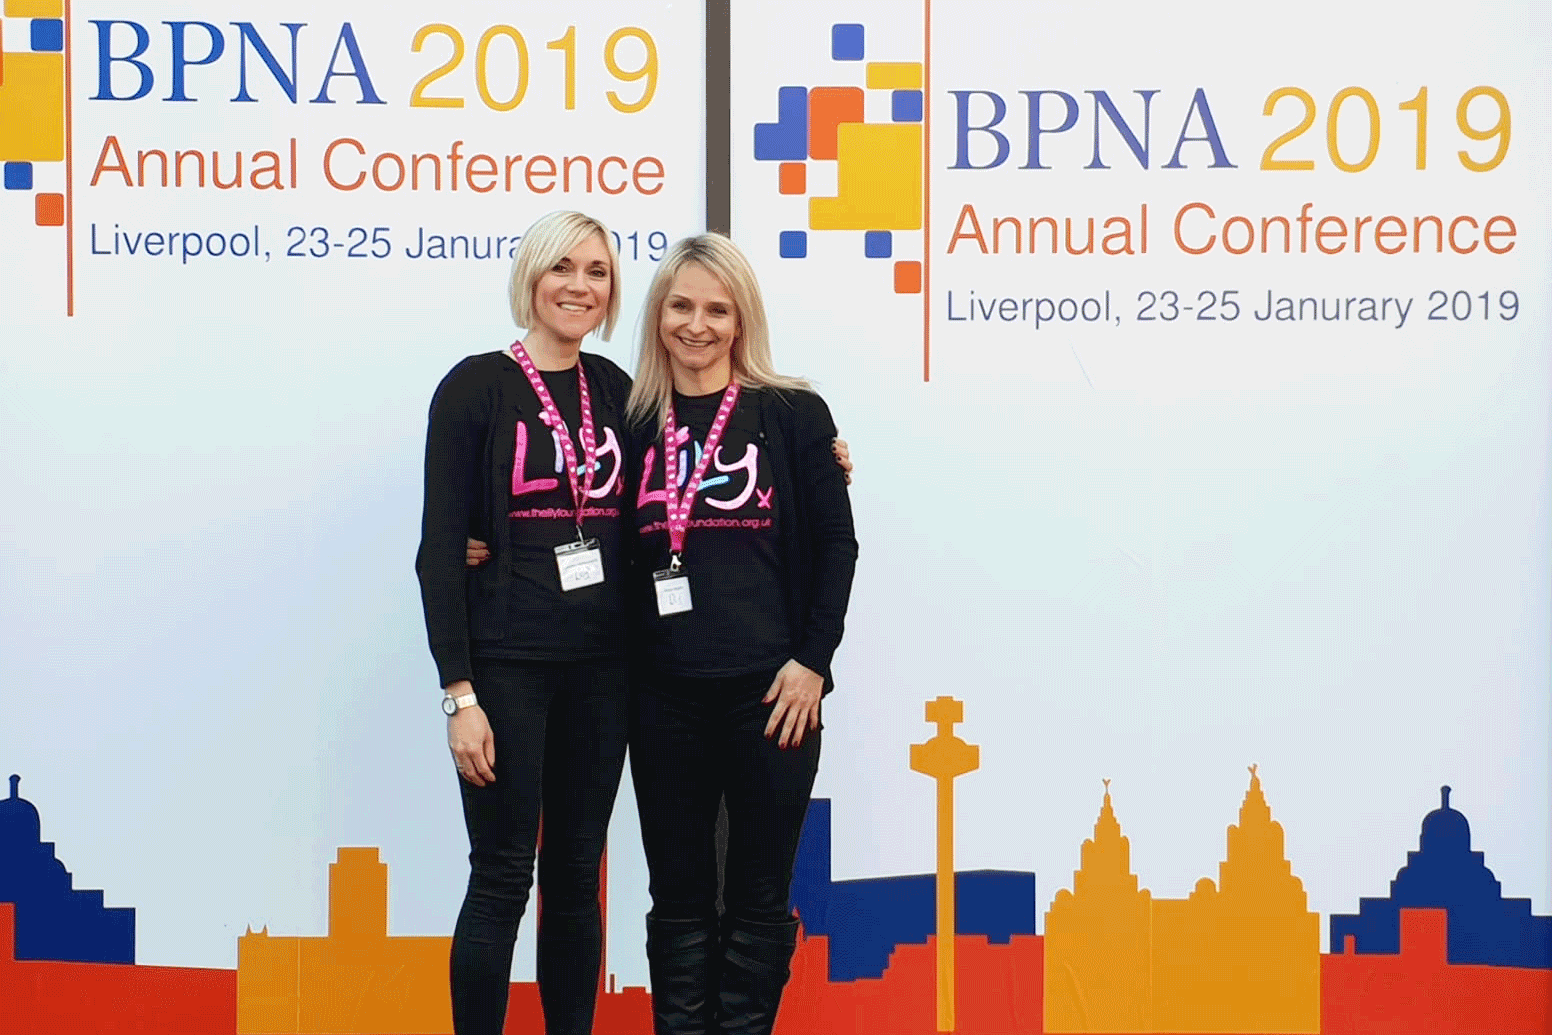 The Lily Foundation attends the 2019 British Paediatric Neurology Association conference in Liverpool